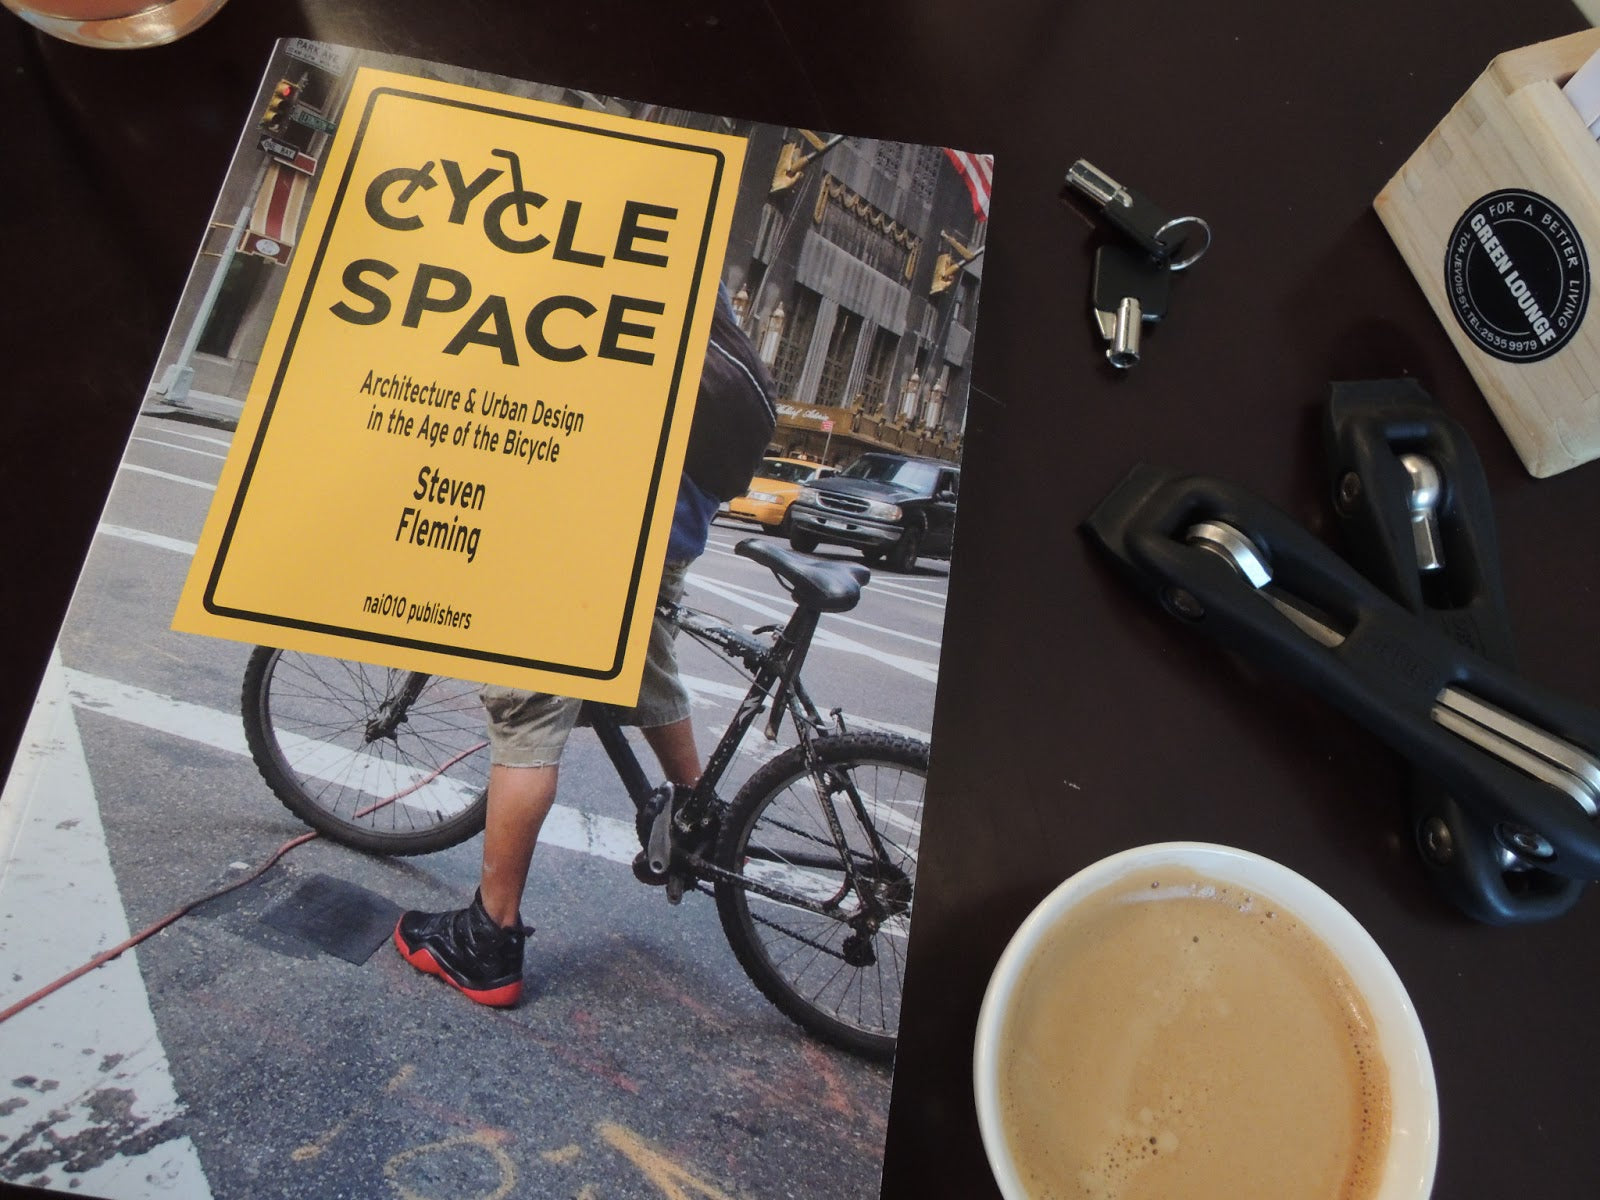 Cycle Space by Steven Fleming